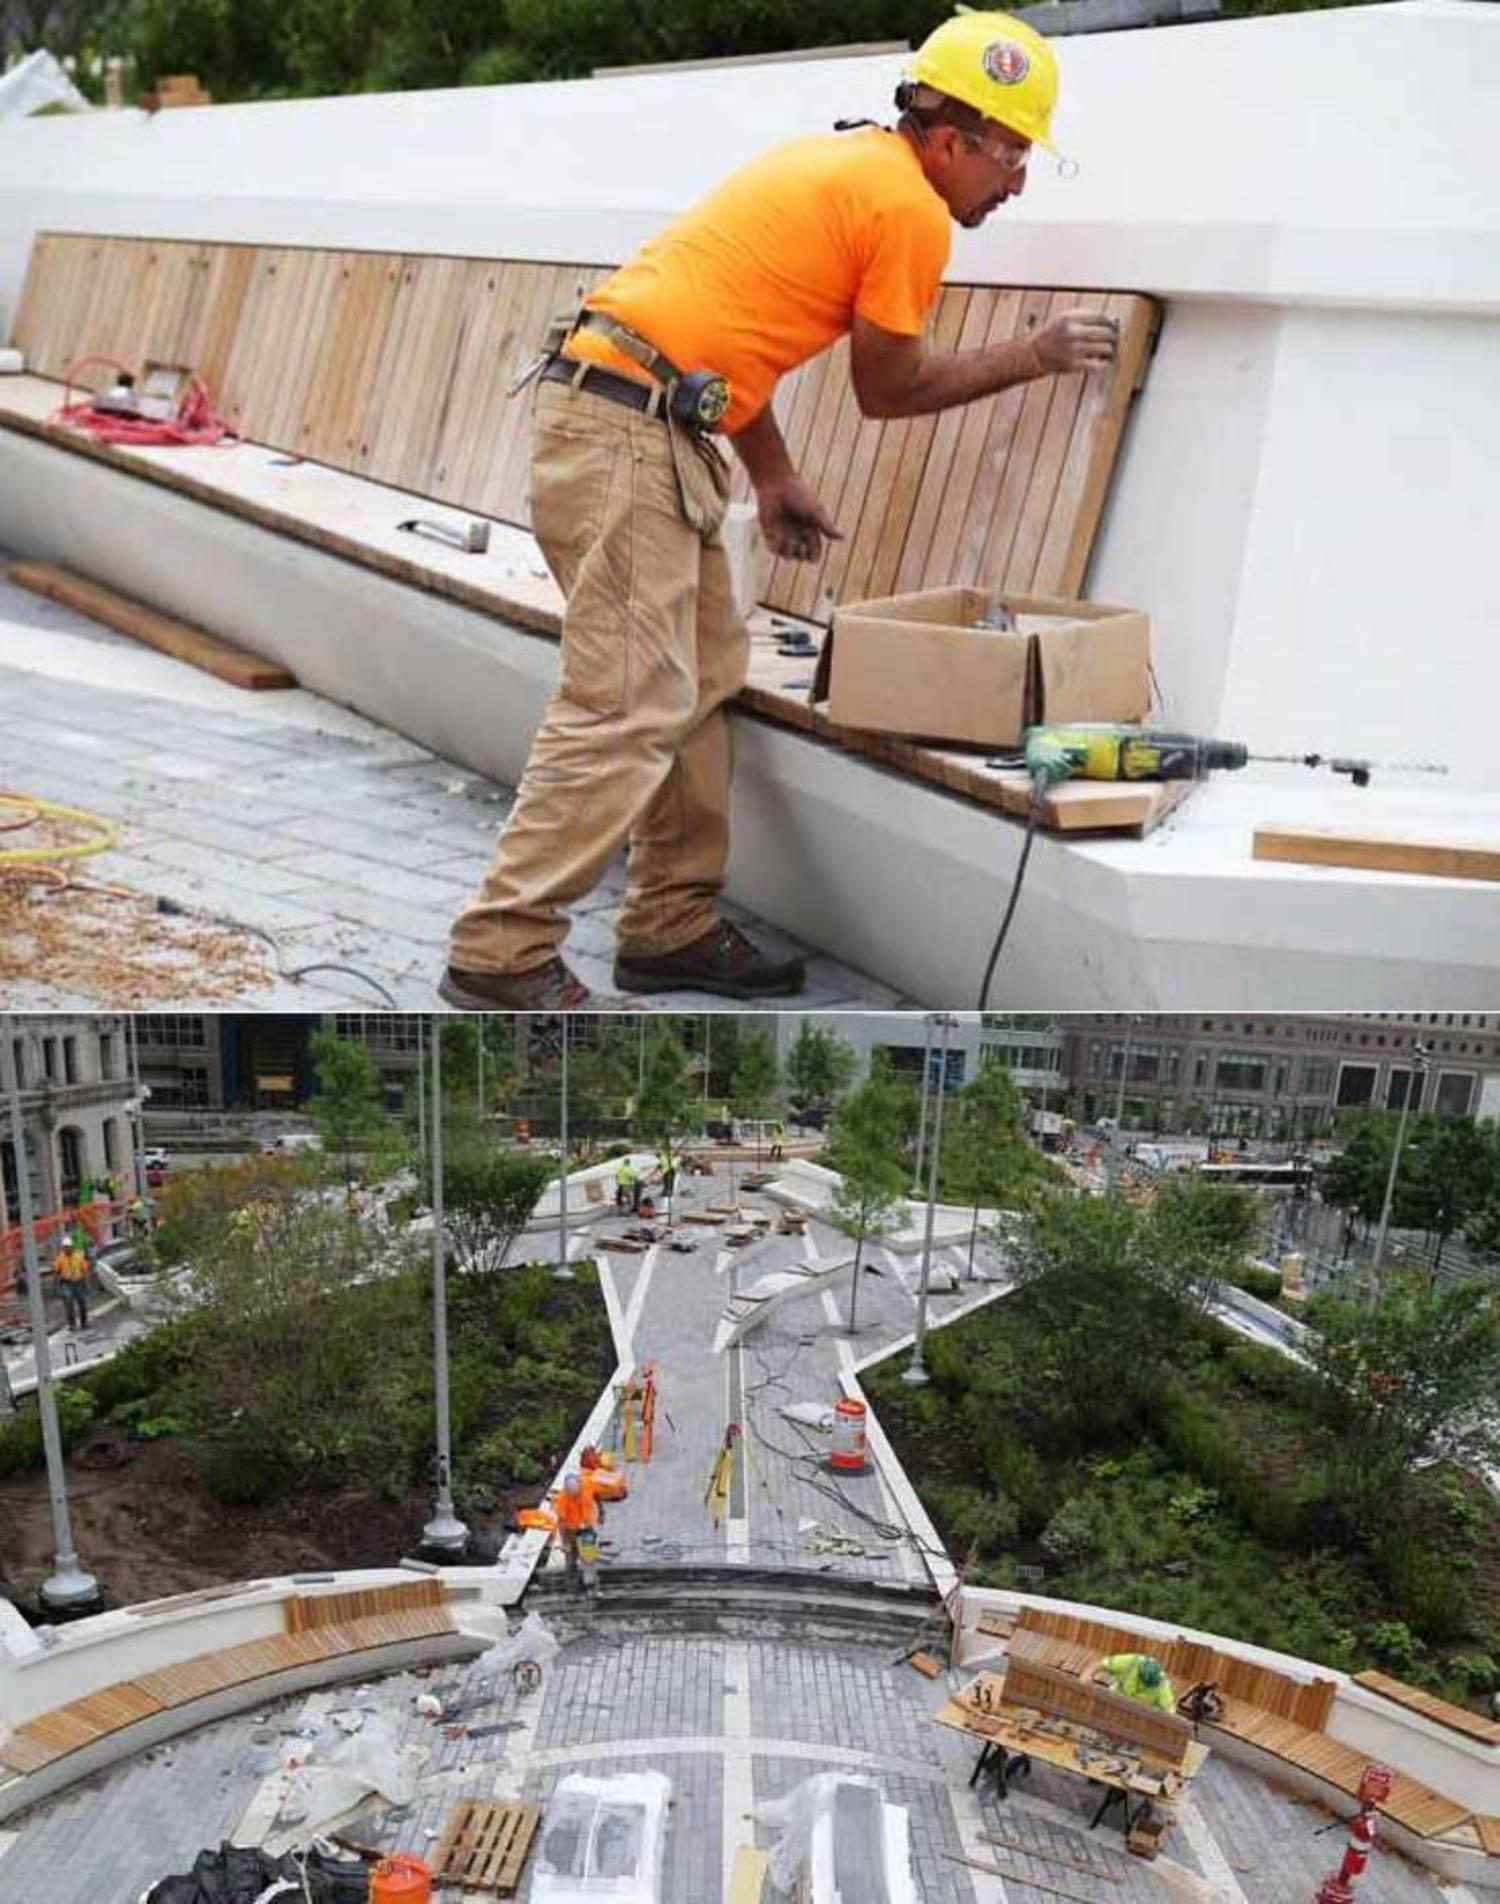 WTC Liberty Park Workers Continue to Install Slats and Planters